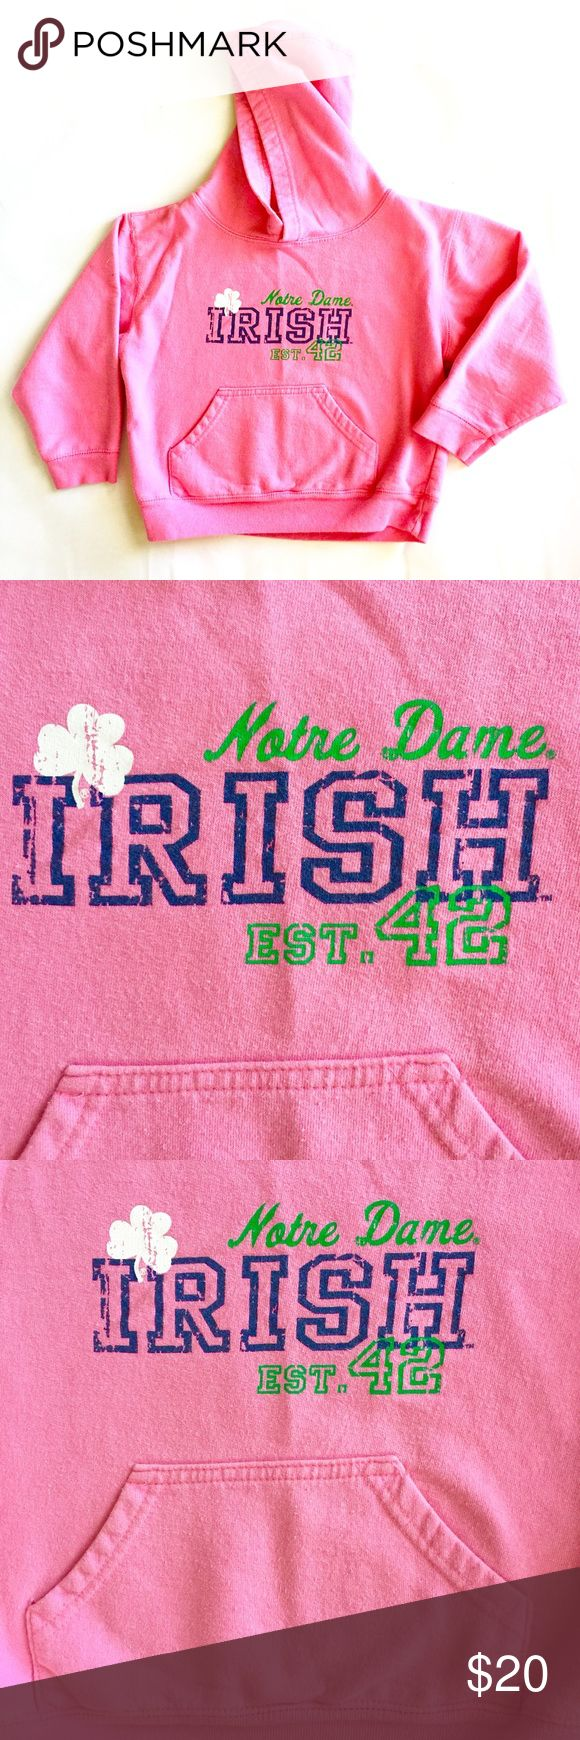 "EUC Notre Dame IRISH Pink Hoodie in Girls' 5/6T This Notre Dame IRISH Pink Hoodie in Girls' Size 5/6 is adorable and in excellent used condition.  Perfect for your little leprechaun, she can ""cheer cheer"" in style AND femininity, without bookstore prices!  This is an official piece, purchased at the Hammes bookstore. College Kids Shirts & Tops Sweatshirts & Hoodies"